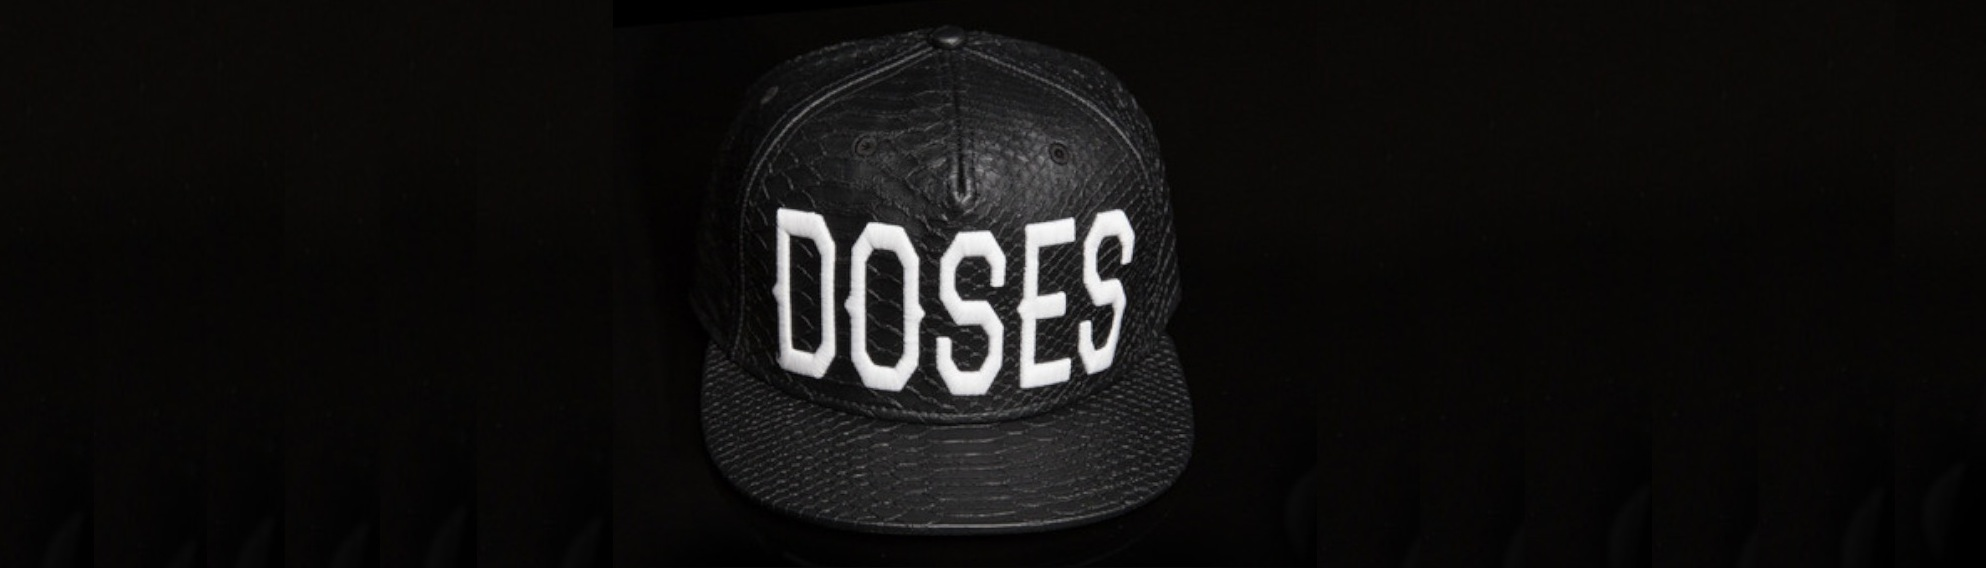 Daily Doses by Ryan Alberts